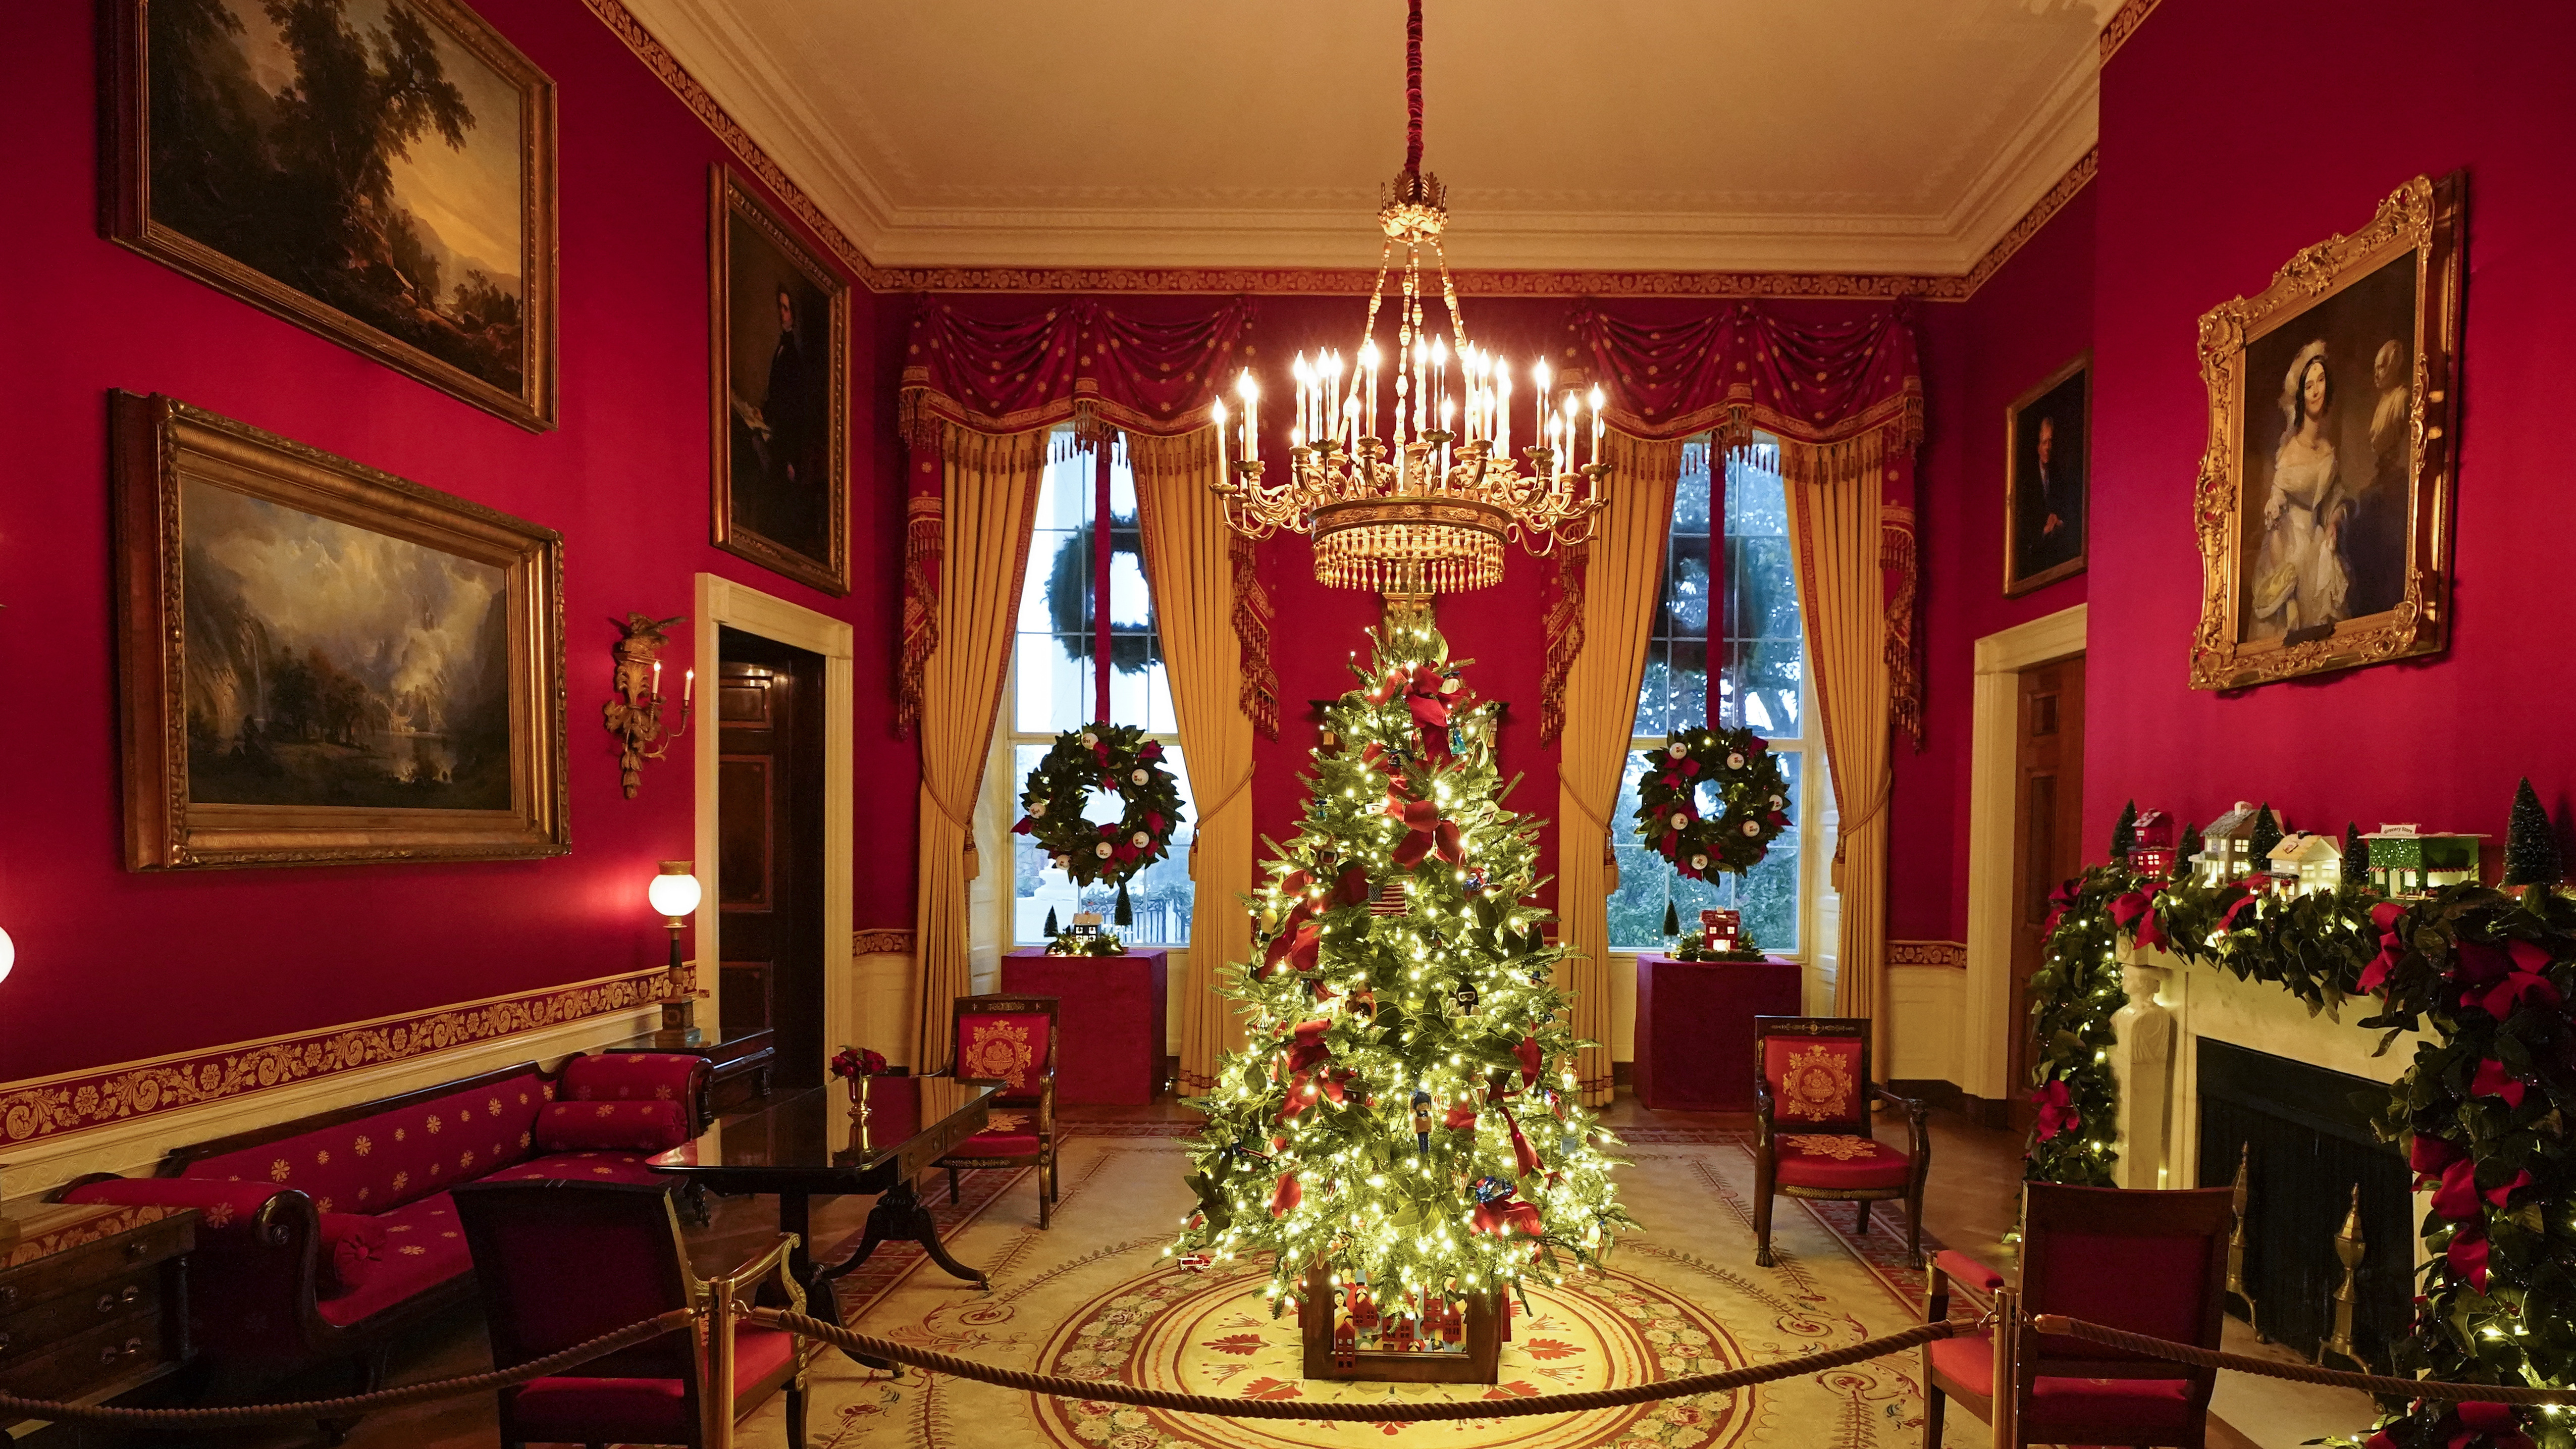 Youtube 2021 Merry Christmas By President Trump Melania Trump S 2020 Christmas Decorations Are Unconventionally Traditional Npr